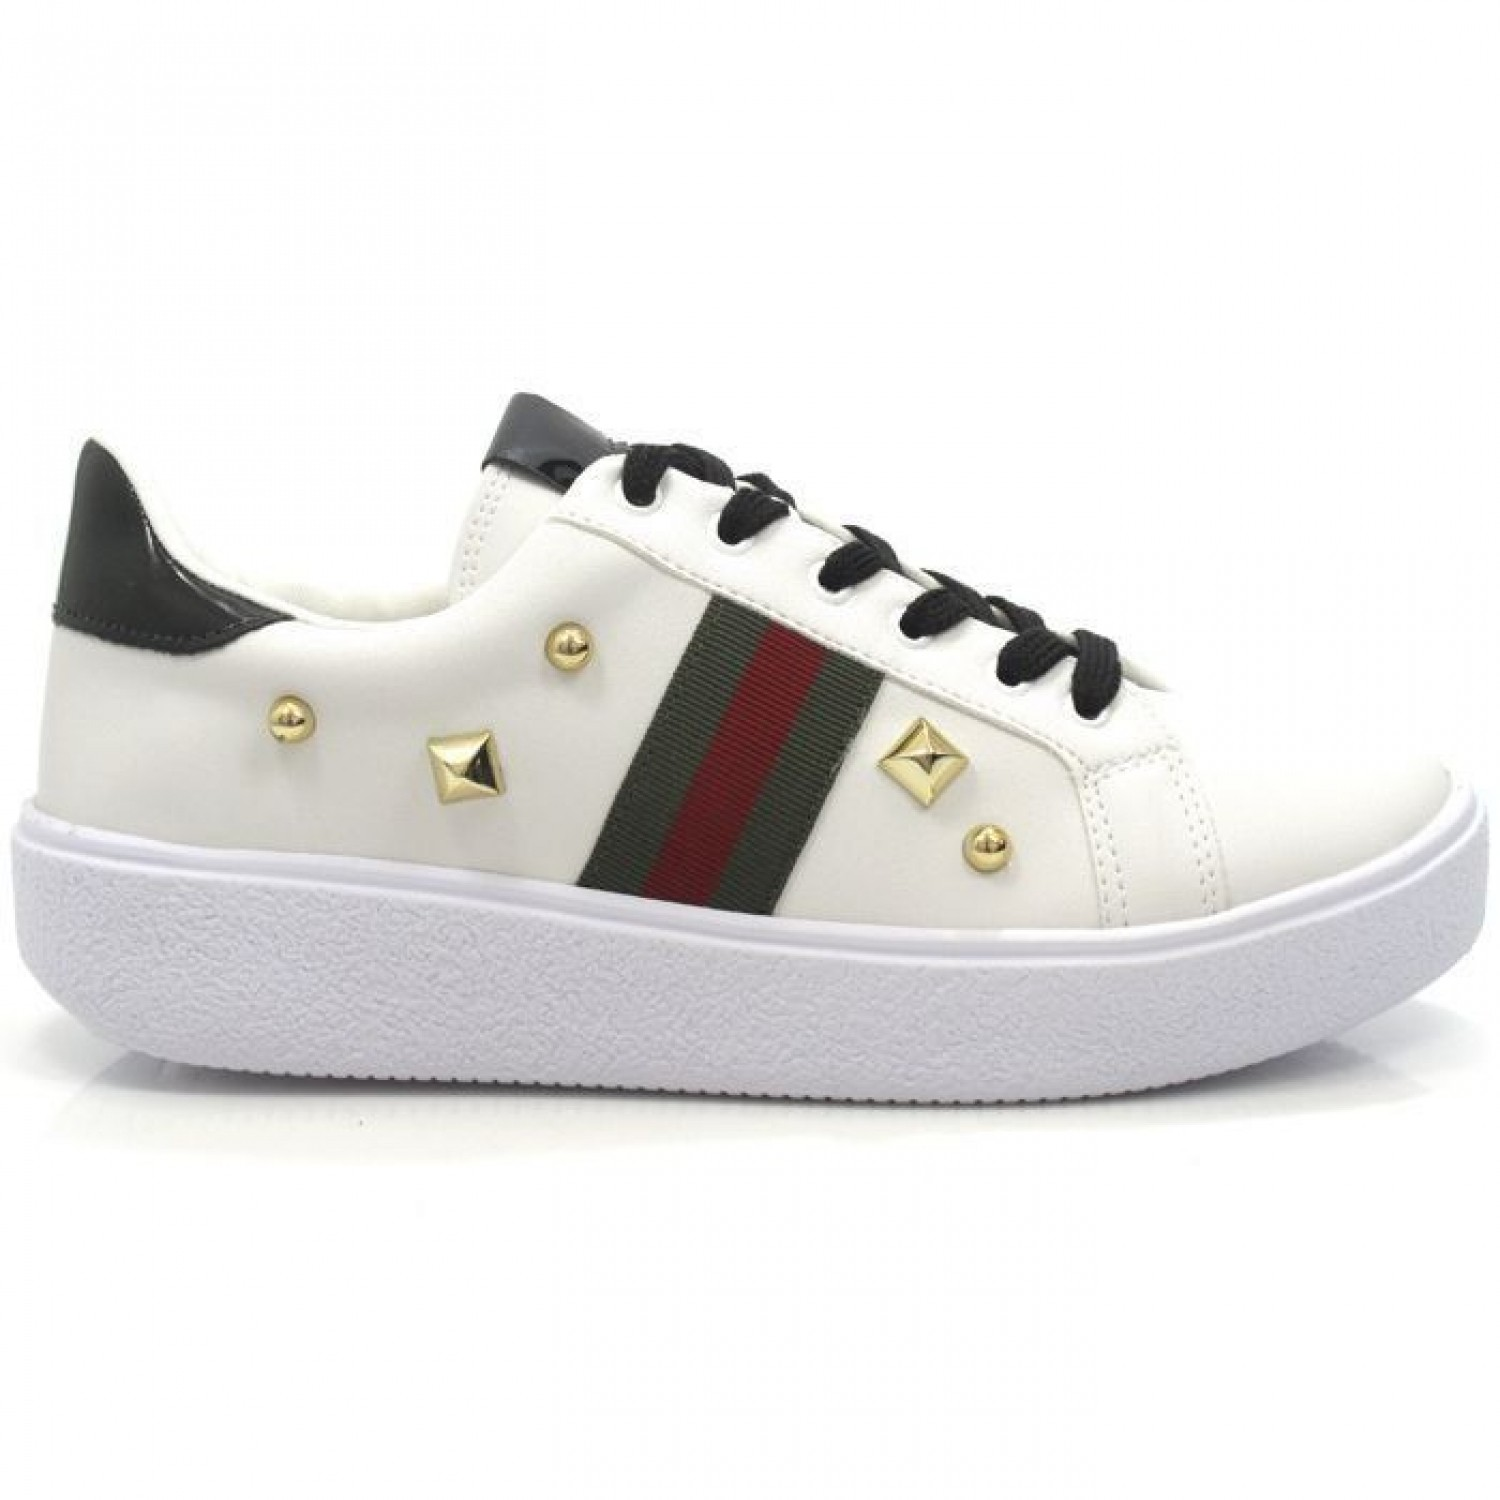 TÊNIS GUCCI INSPIRED SPIKES VERDE